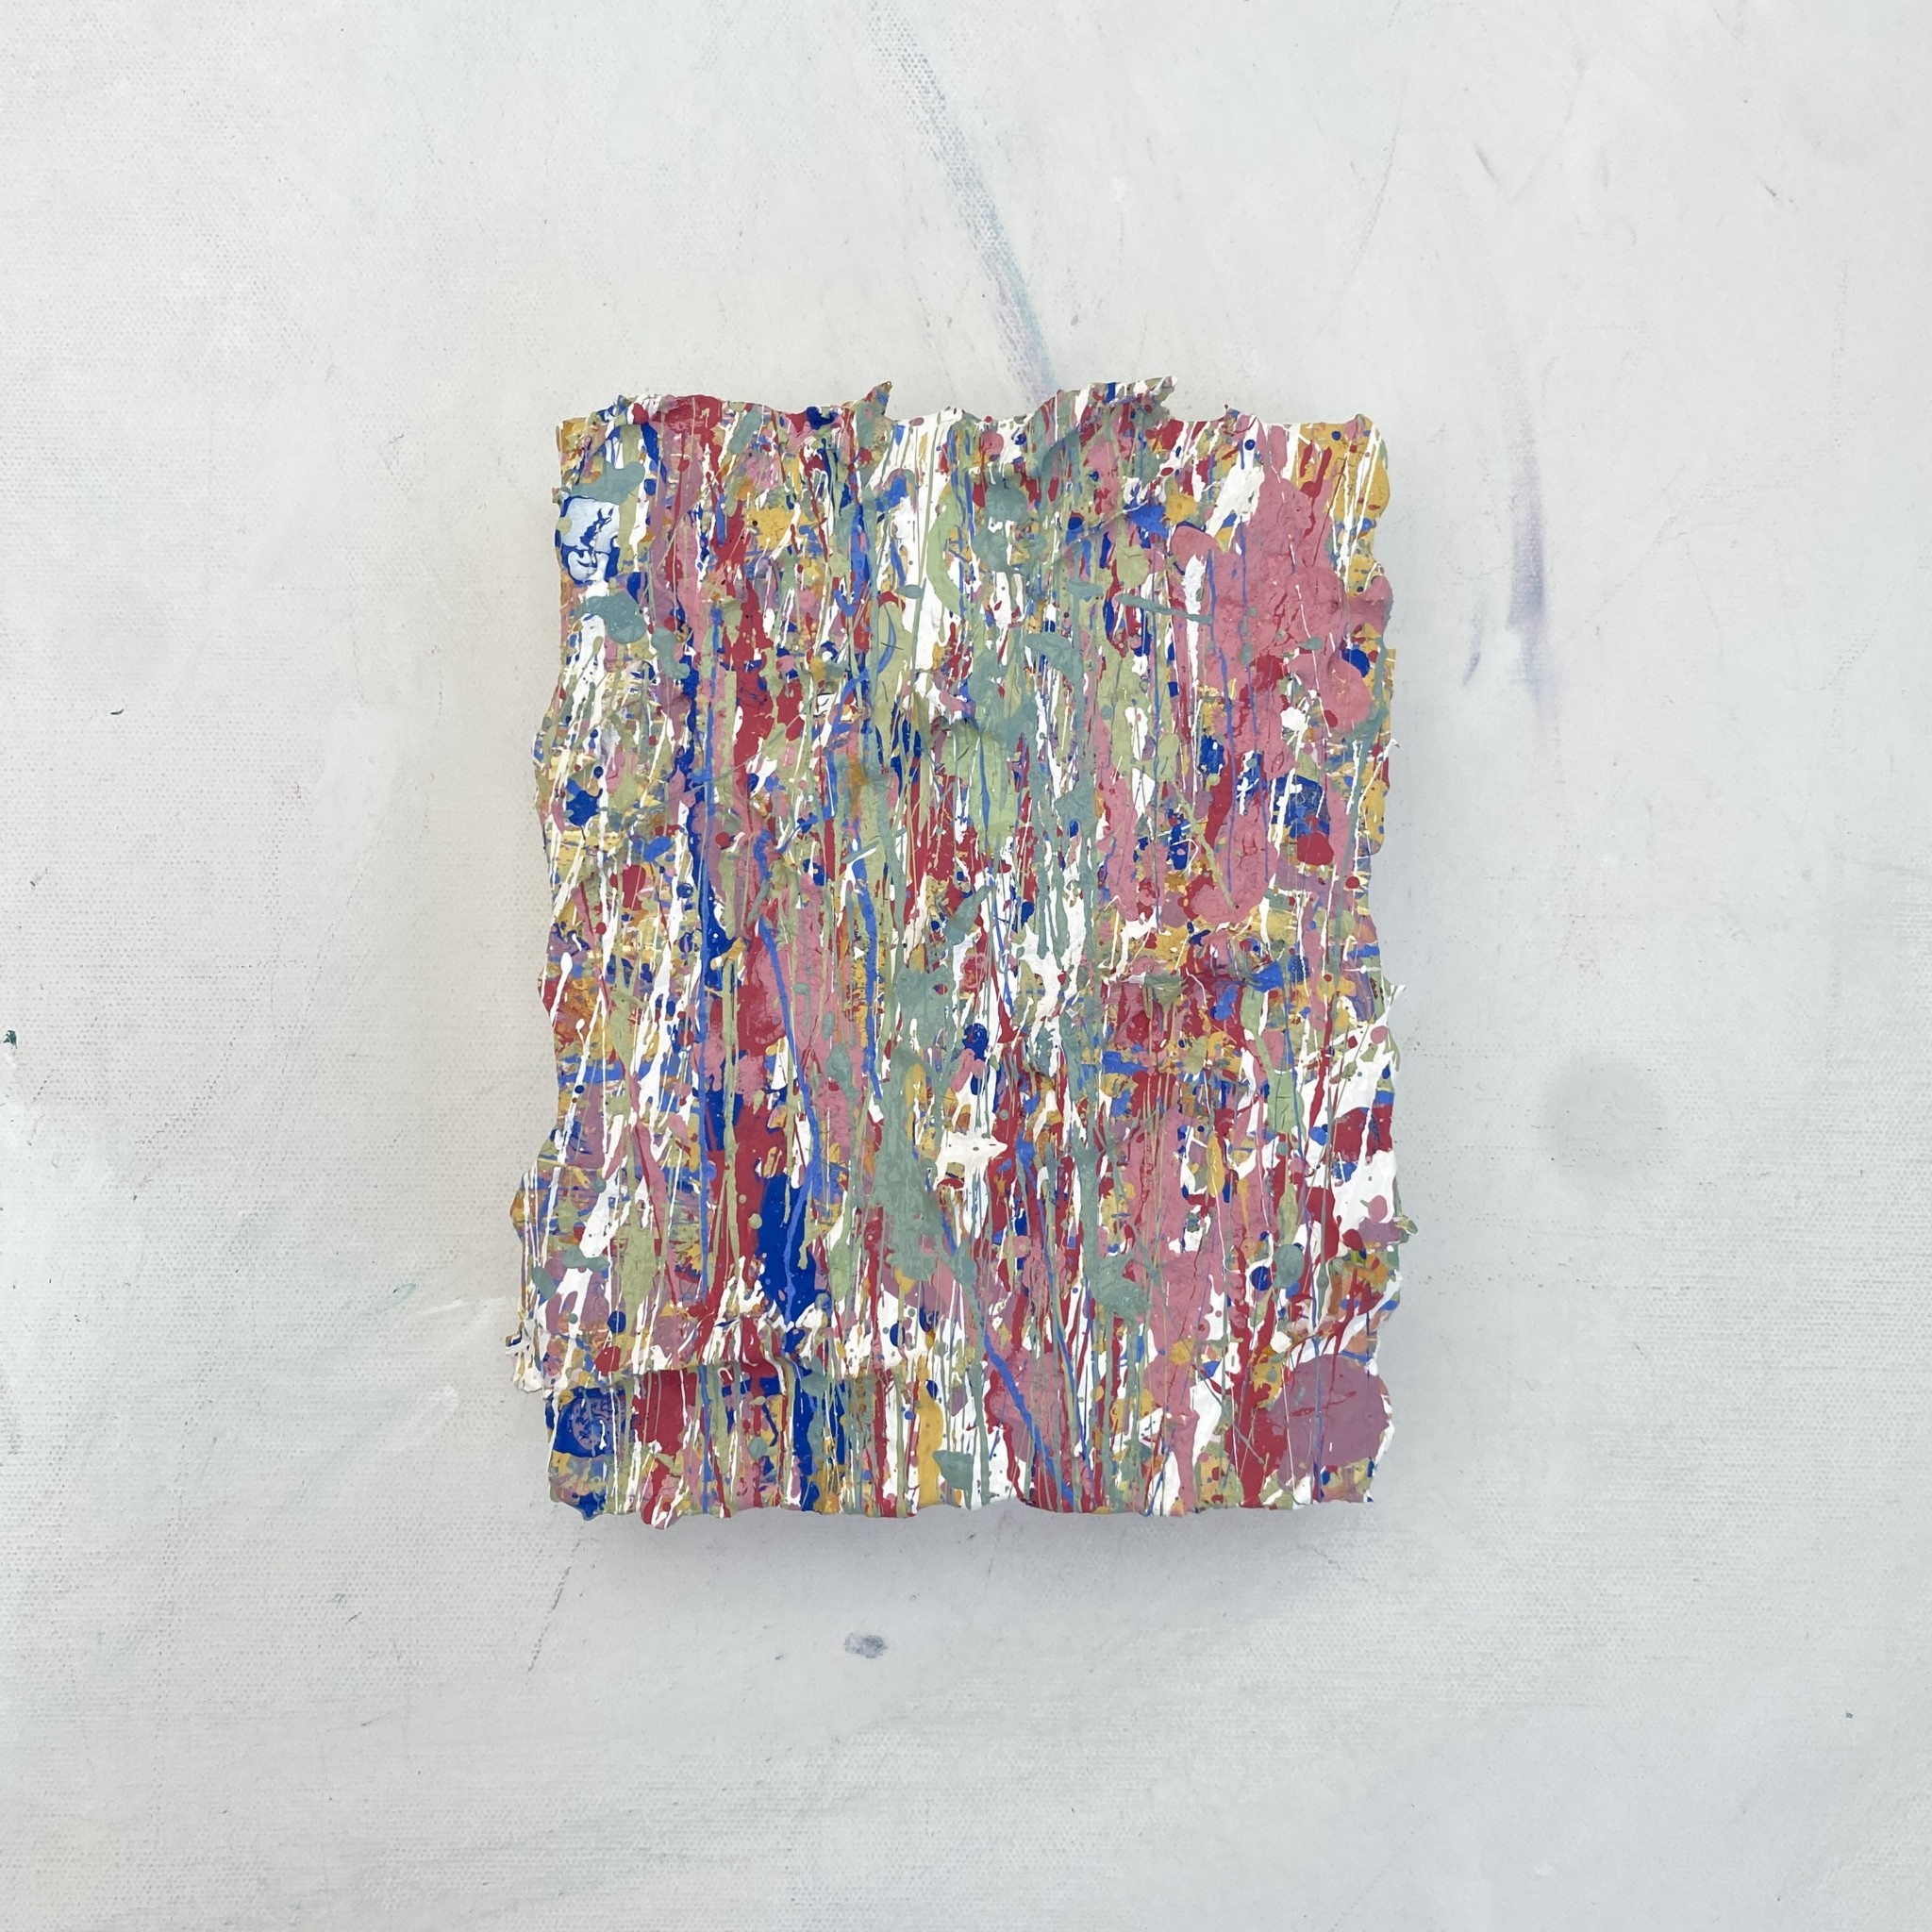 gallery view elements number five artwork a pastel coloured abstract artworks made with plastic free eco friendly paints by somersets artists emily duchscherer kirk